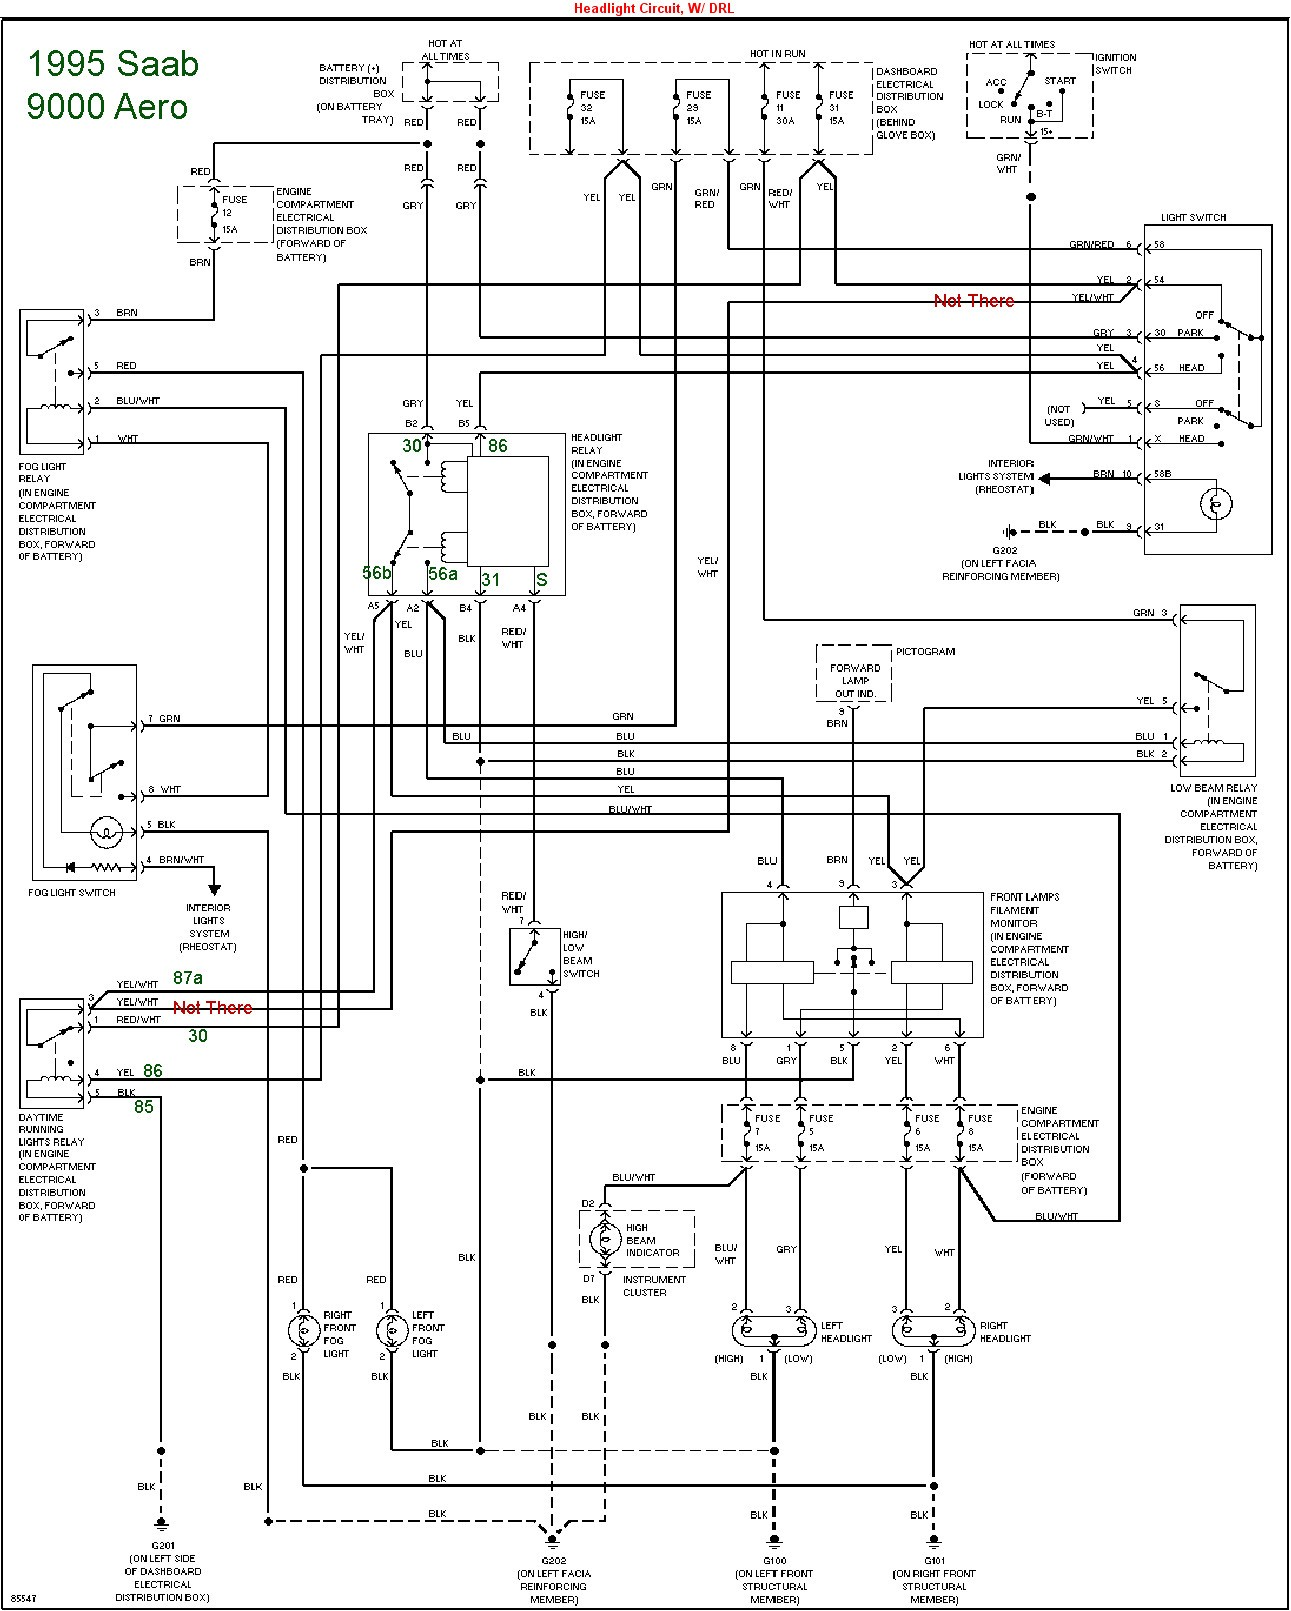 Diagram 2002 Saab 9 3 Wiring Diagrams Full Version Hd Quality Wiring Diagrams Diagramjonay Pointru It